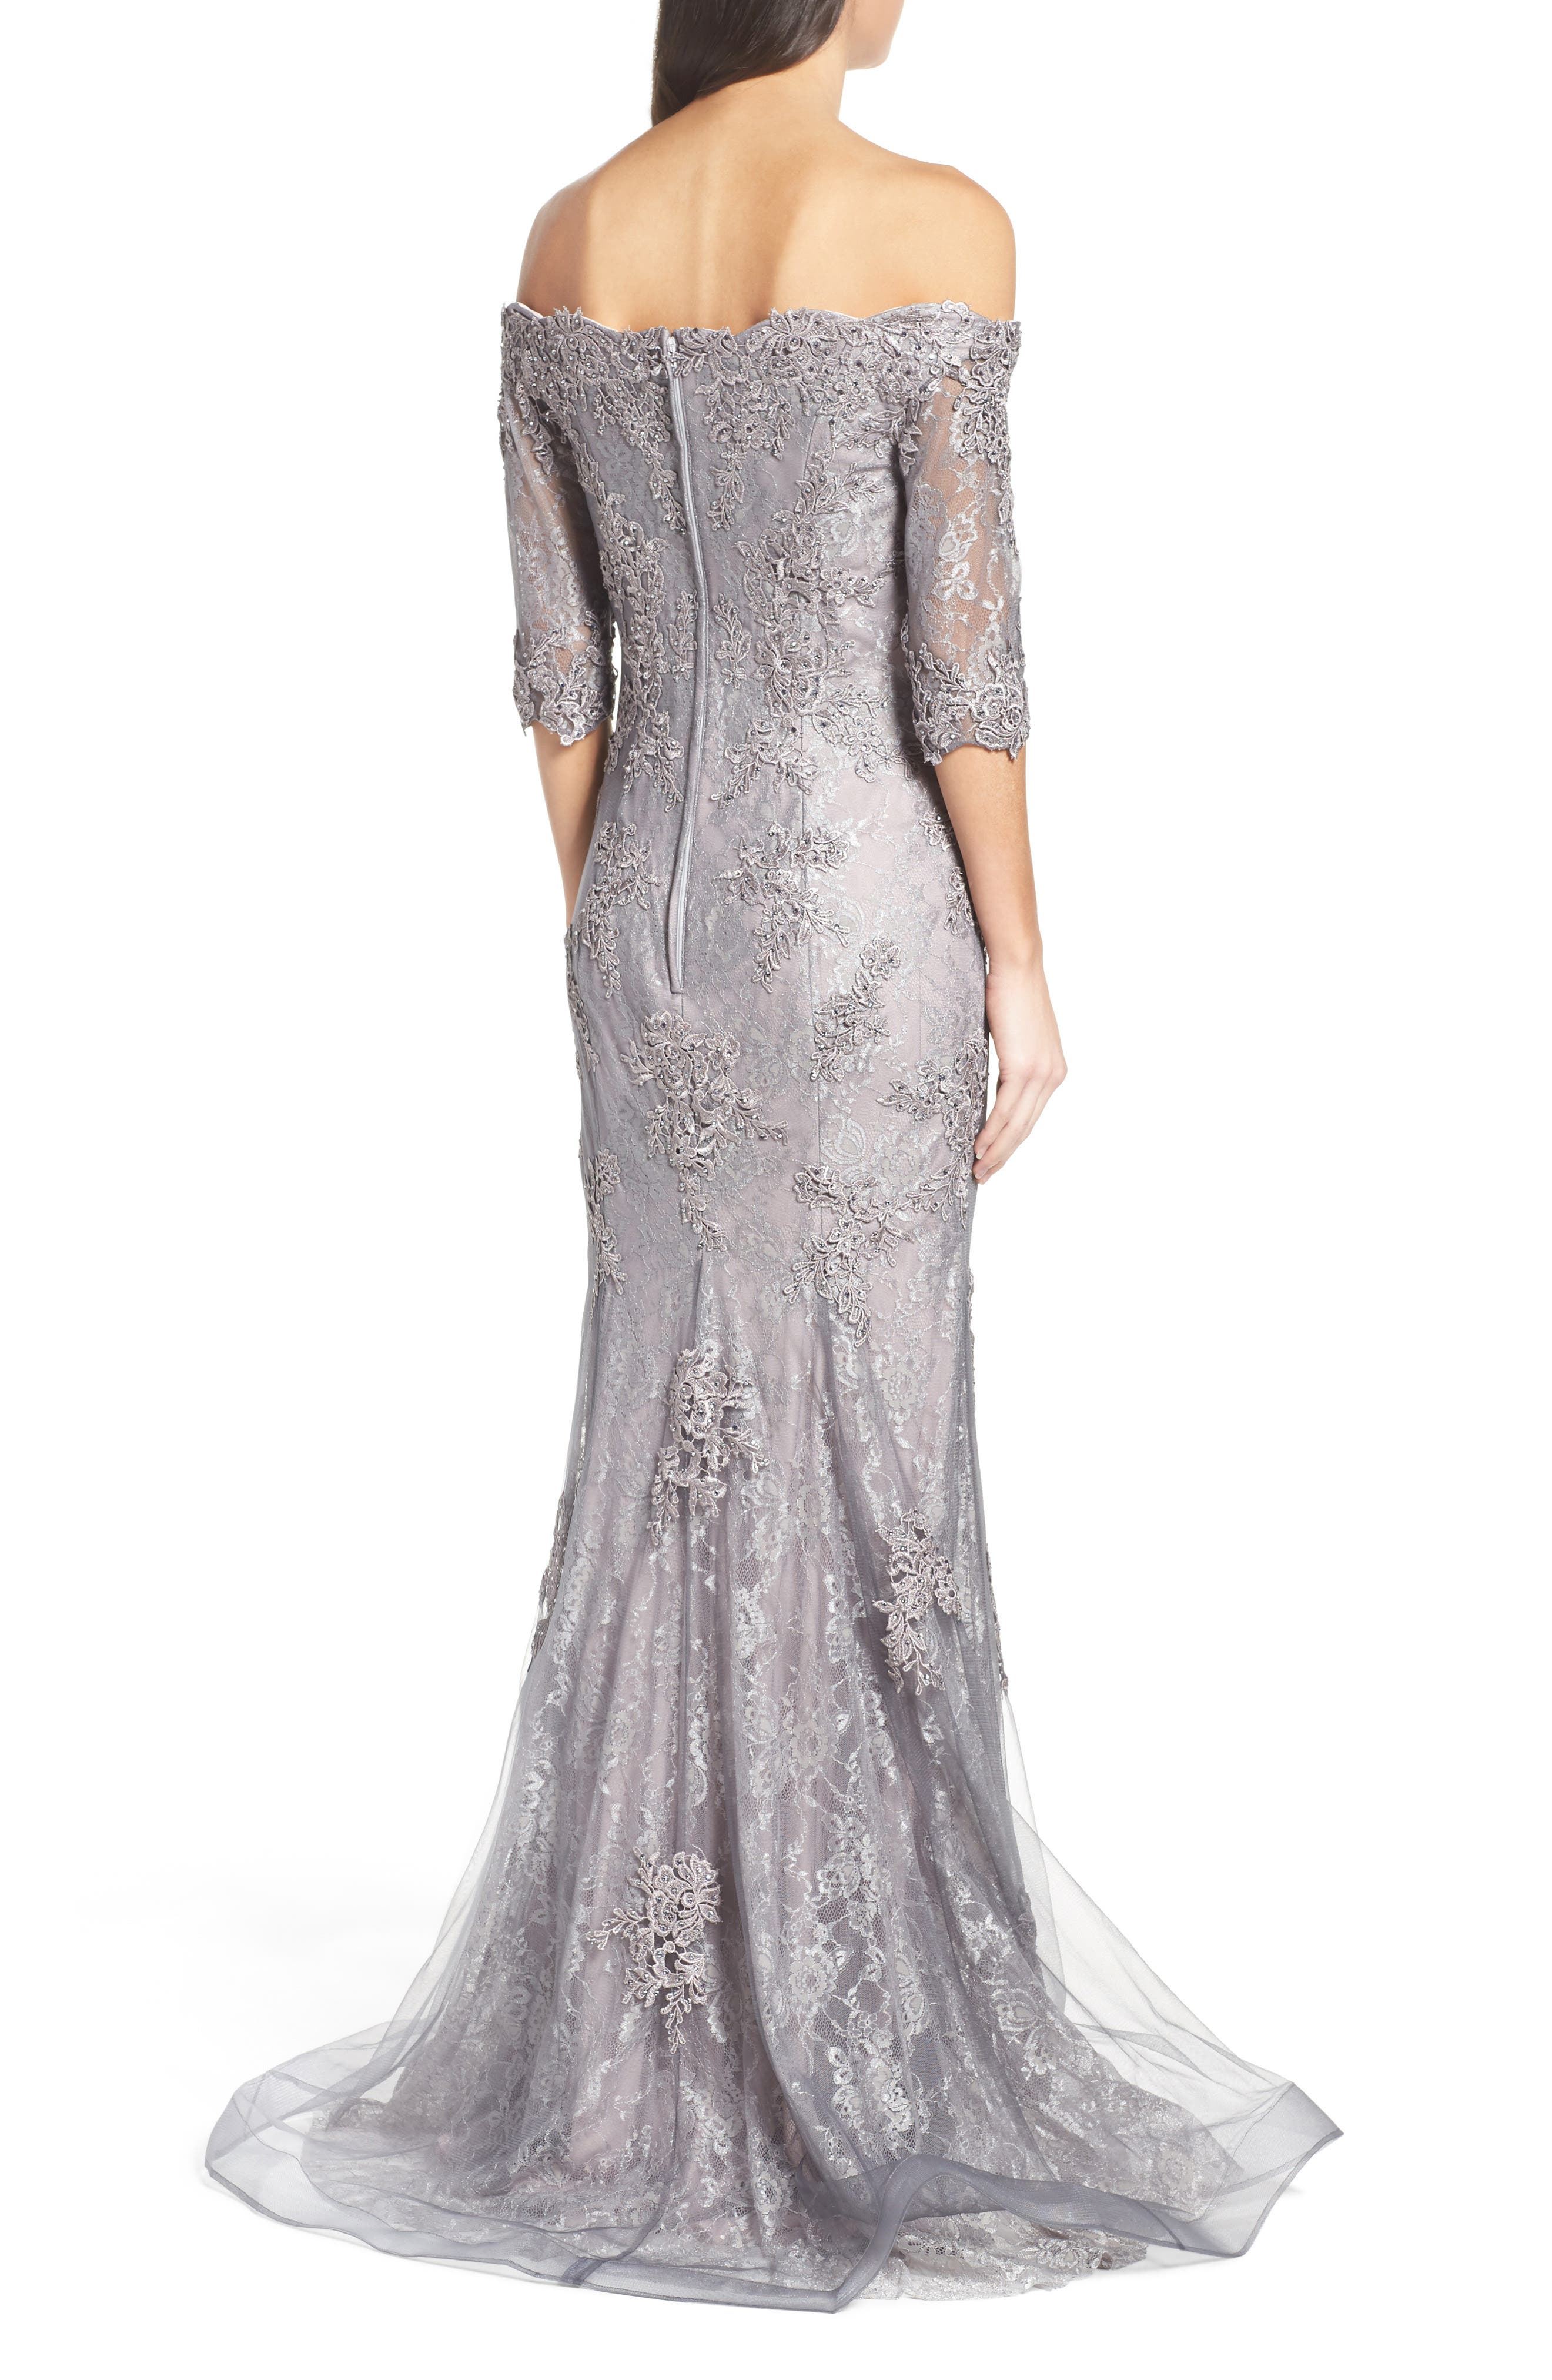 LA FEMME, Fit & Flare Gown with Train, Alternate thumbnail 2, color, PINK/ GRAY